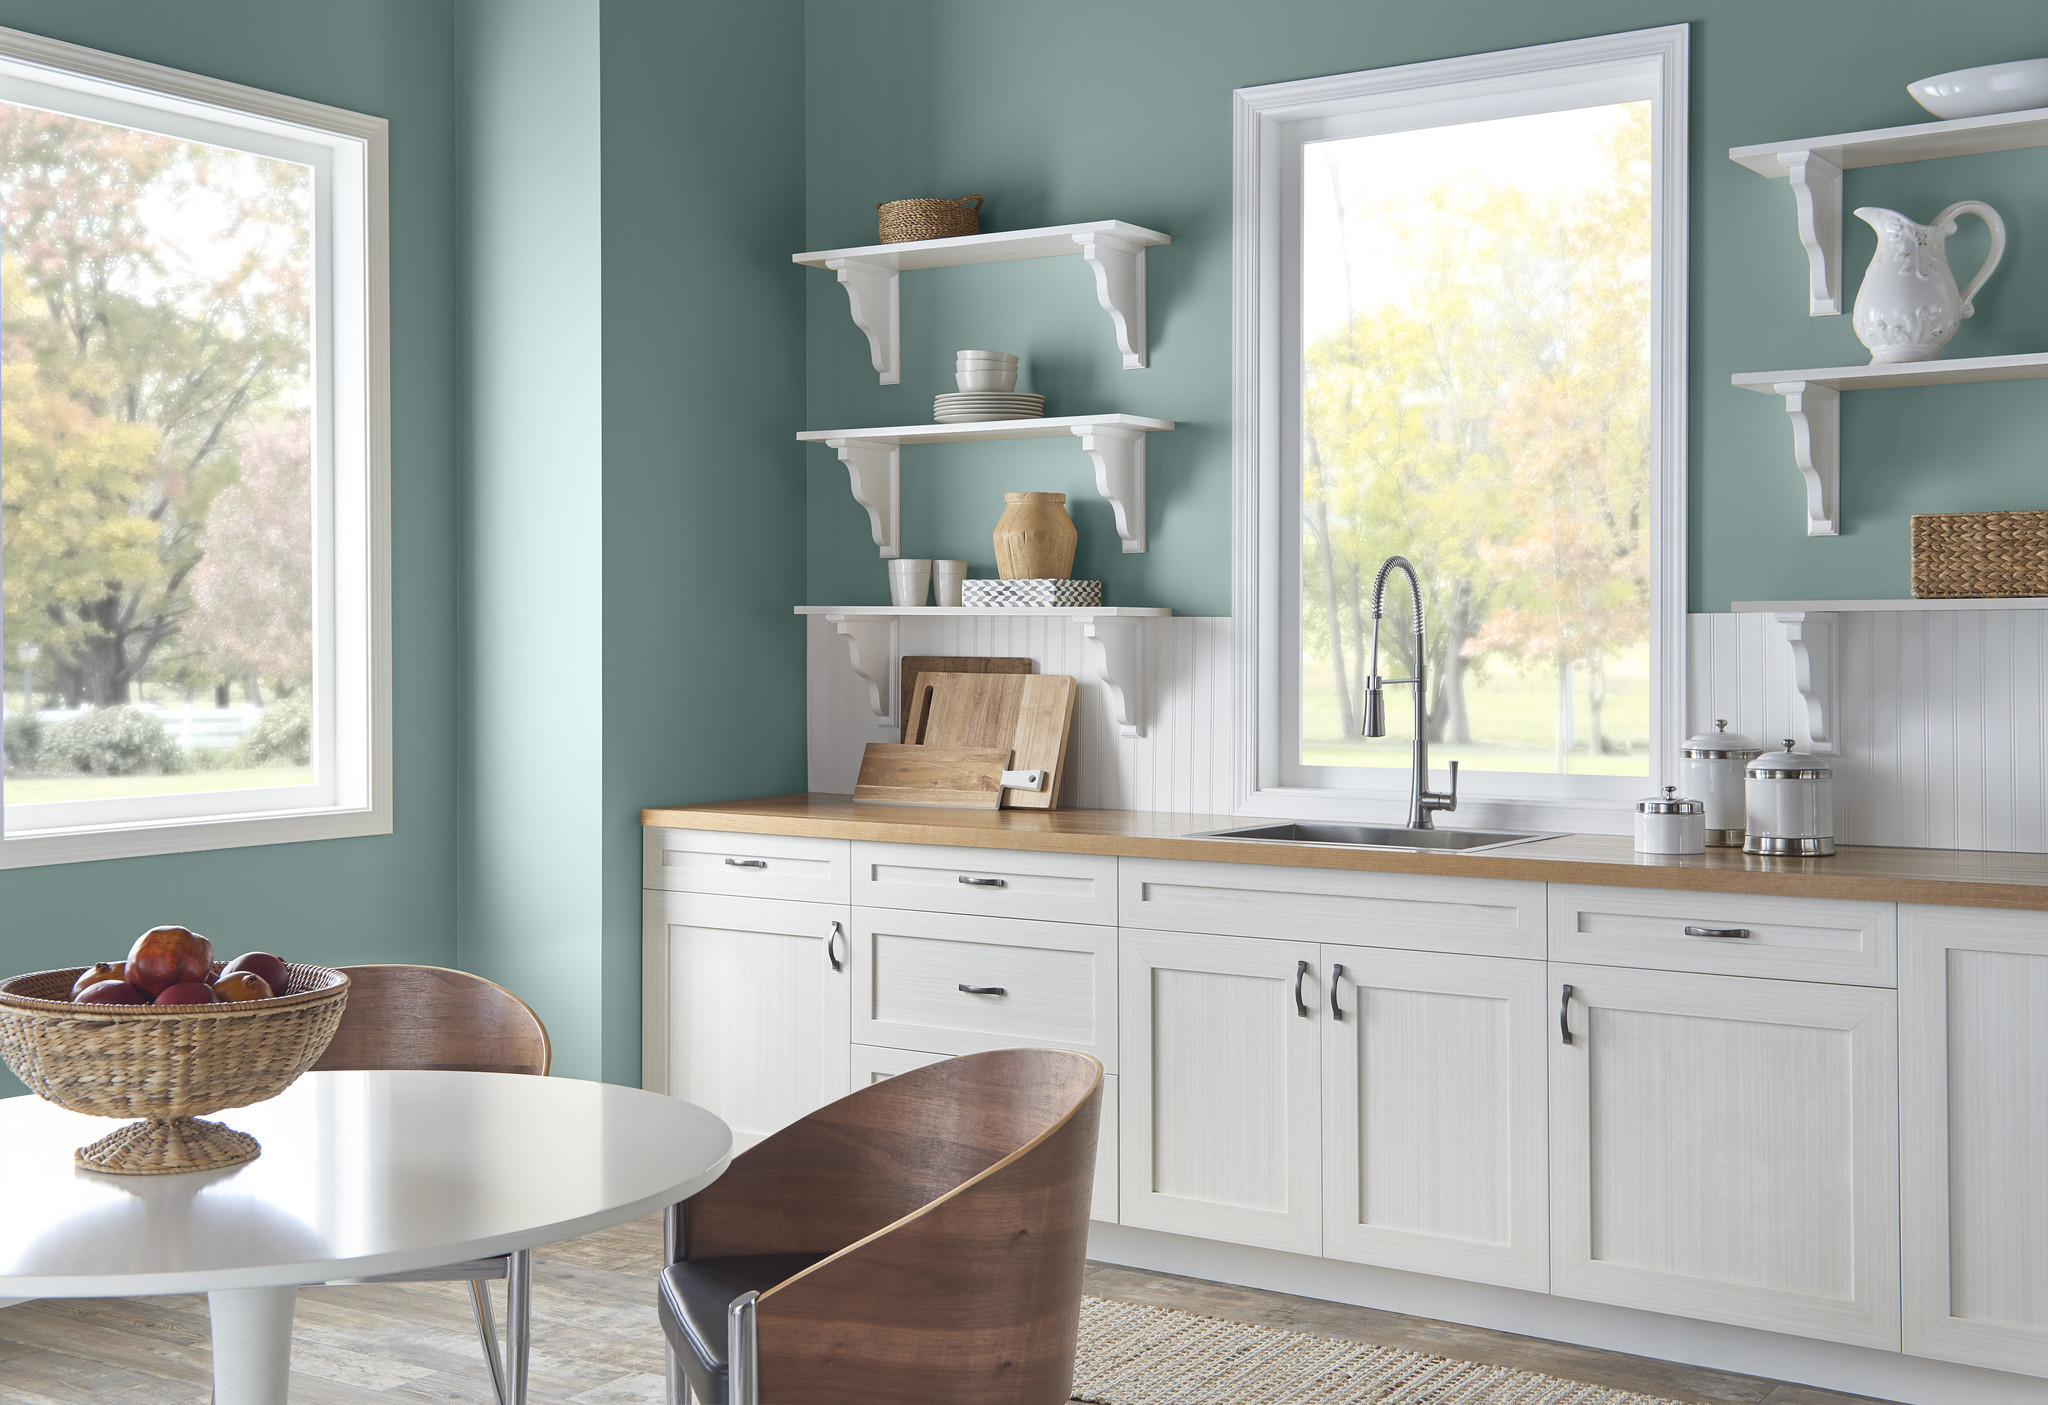 Behr Predicts In The Moment Will Be The Hot New Hue In 2018 La Times